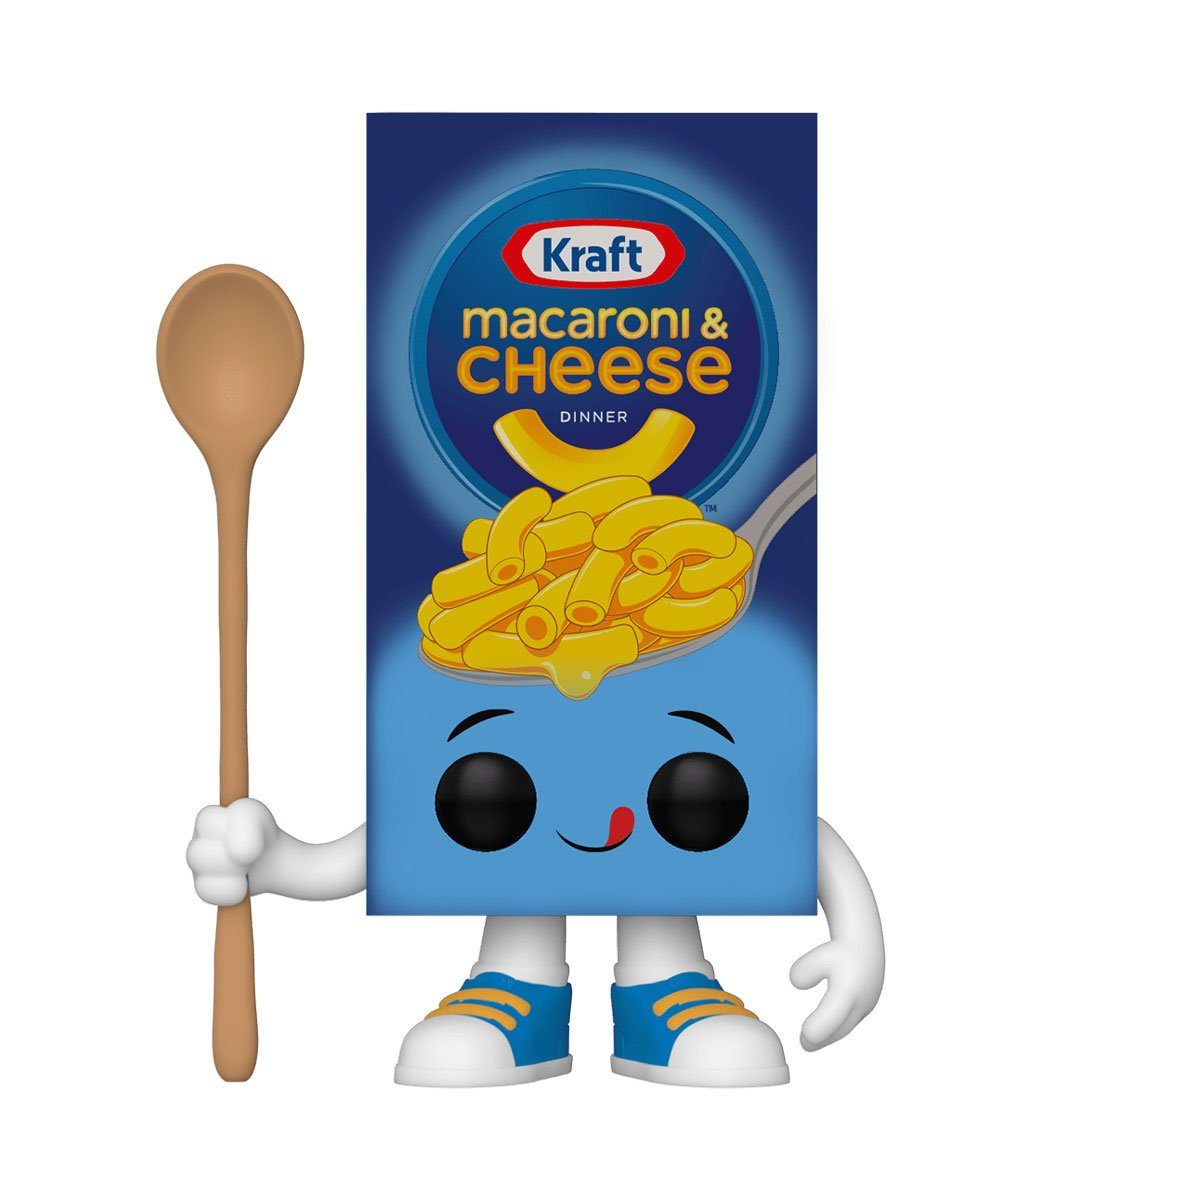 Kraft Mac & Cheese Box #99 Funko POP! Ad Icons [PRE-ORDER FOR ESTIMATED SUMMER 2021* DELIVERY] POP! Funko